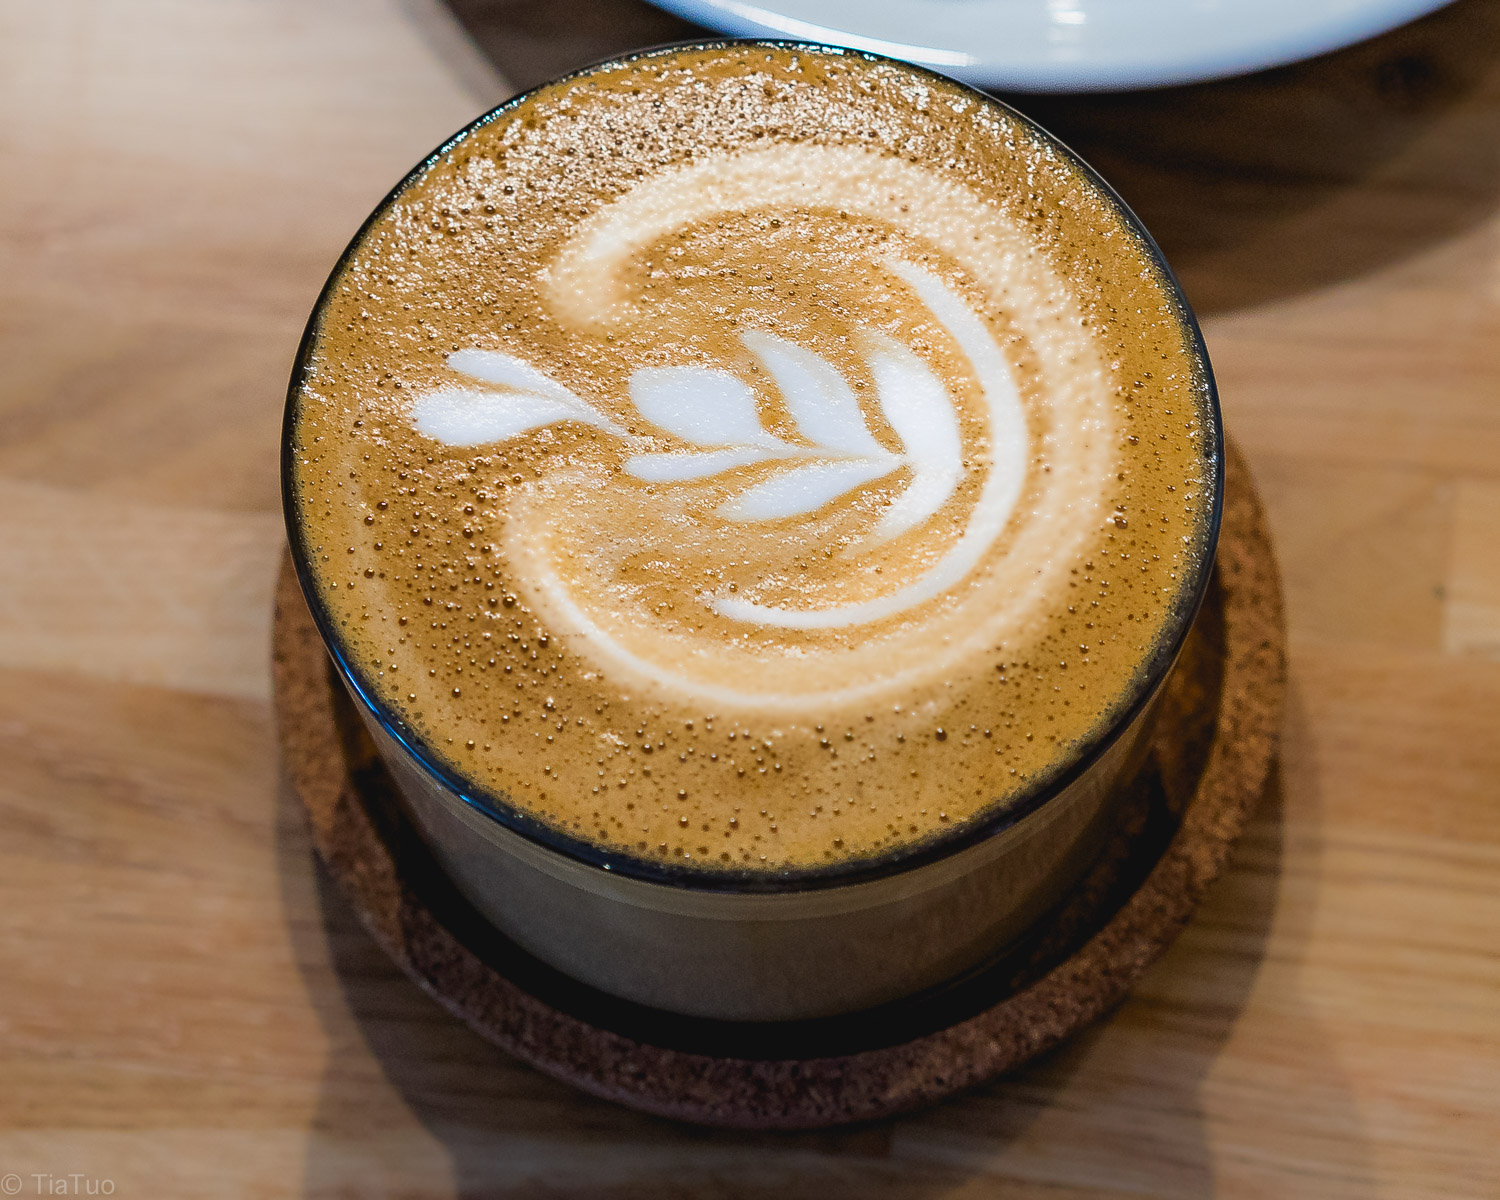 The satisfaction of a perfect rosetta.